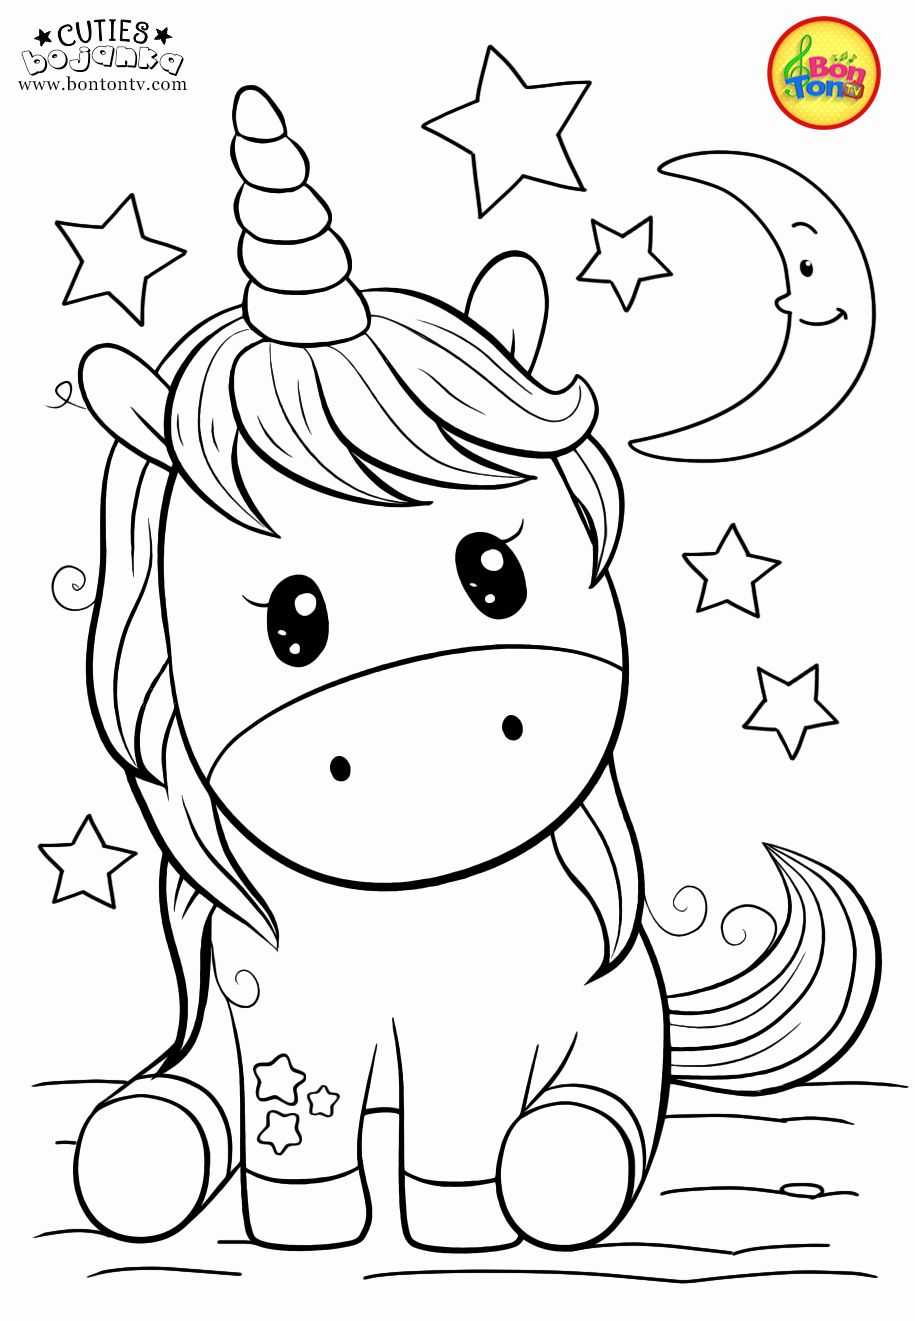 Animals Coloring Materials New Cuties Coloring Pages For Kids Free Preschool Printables Unicorn Coloring Pages Lion Coloring Pages Animal Coloring Pages